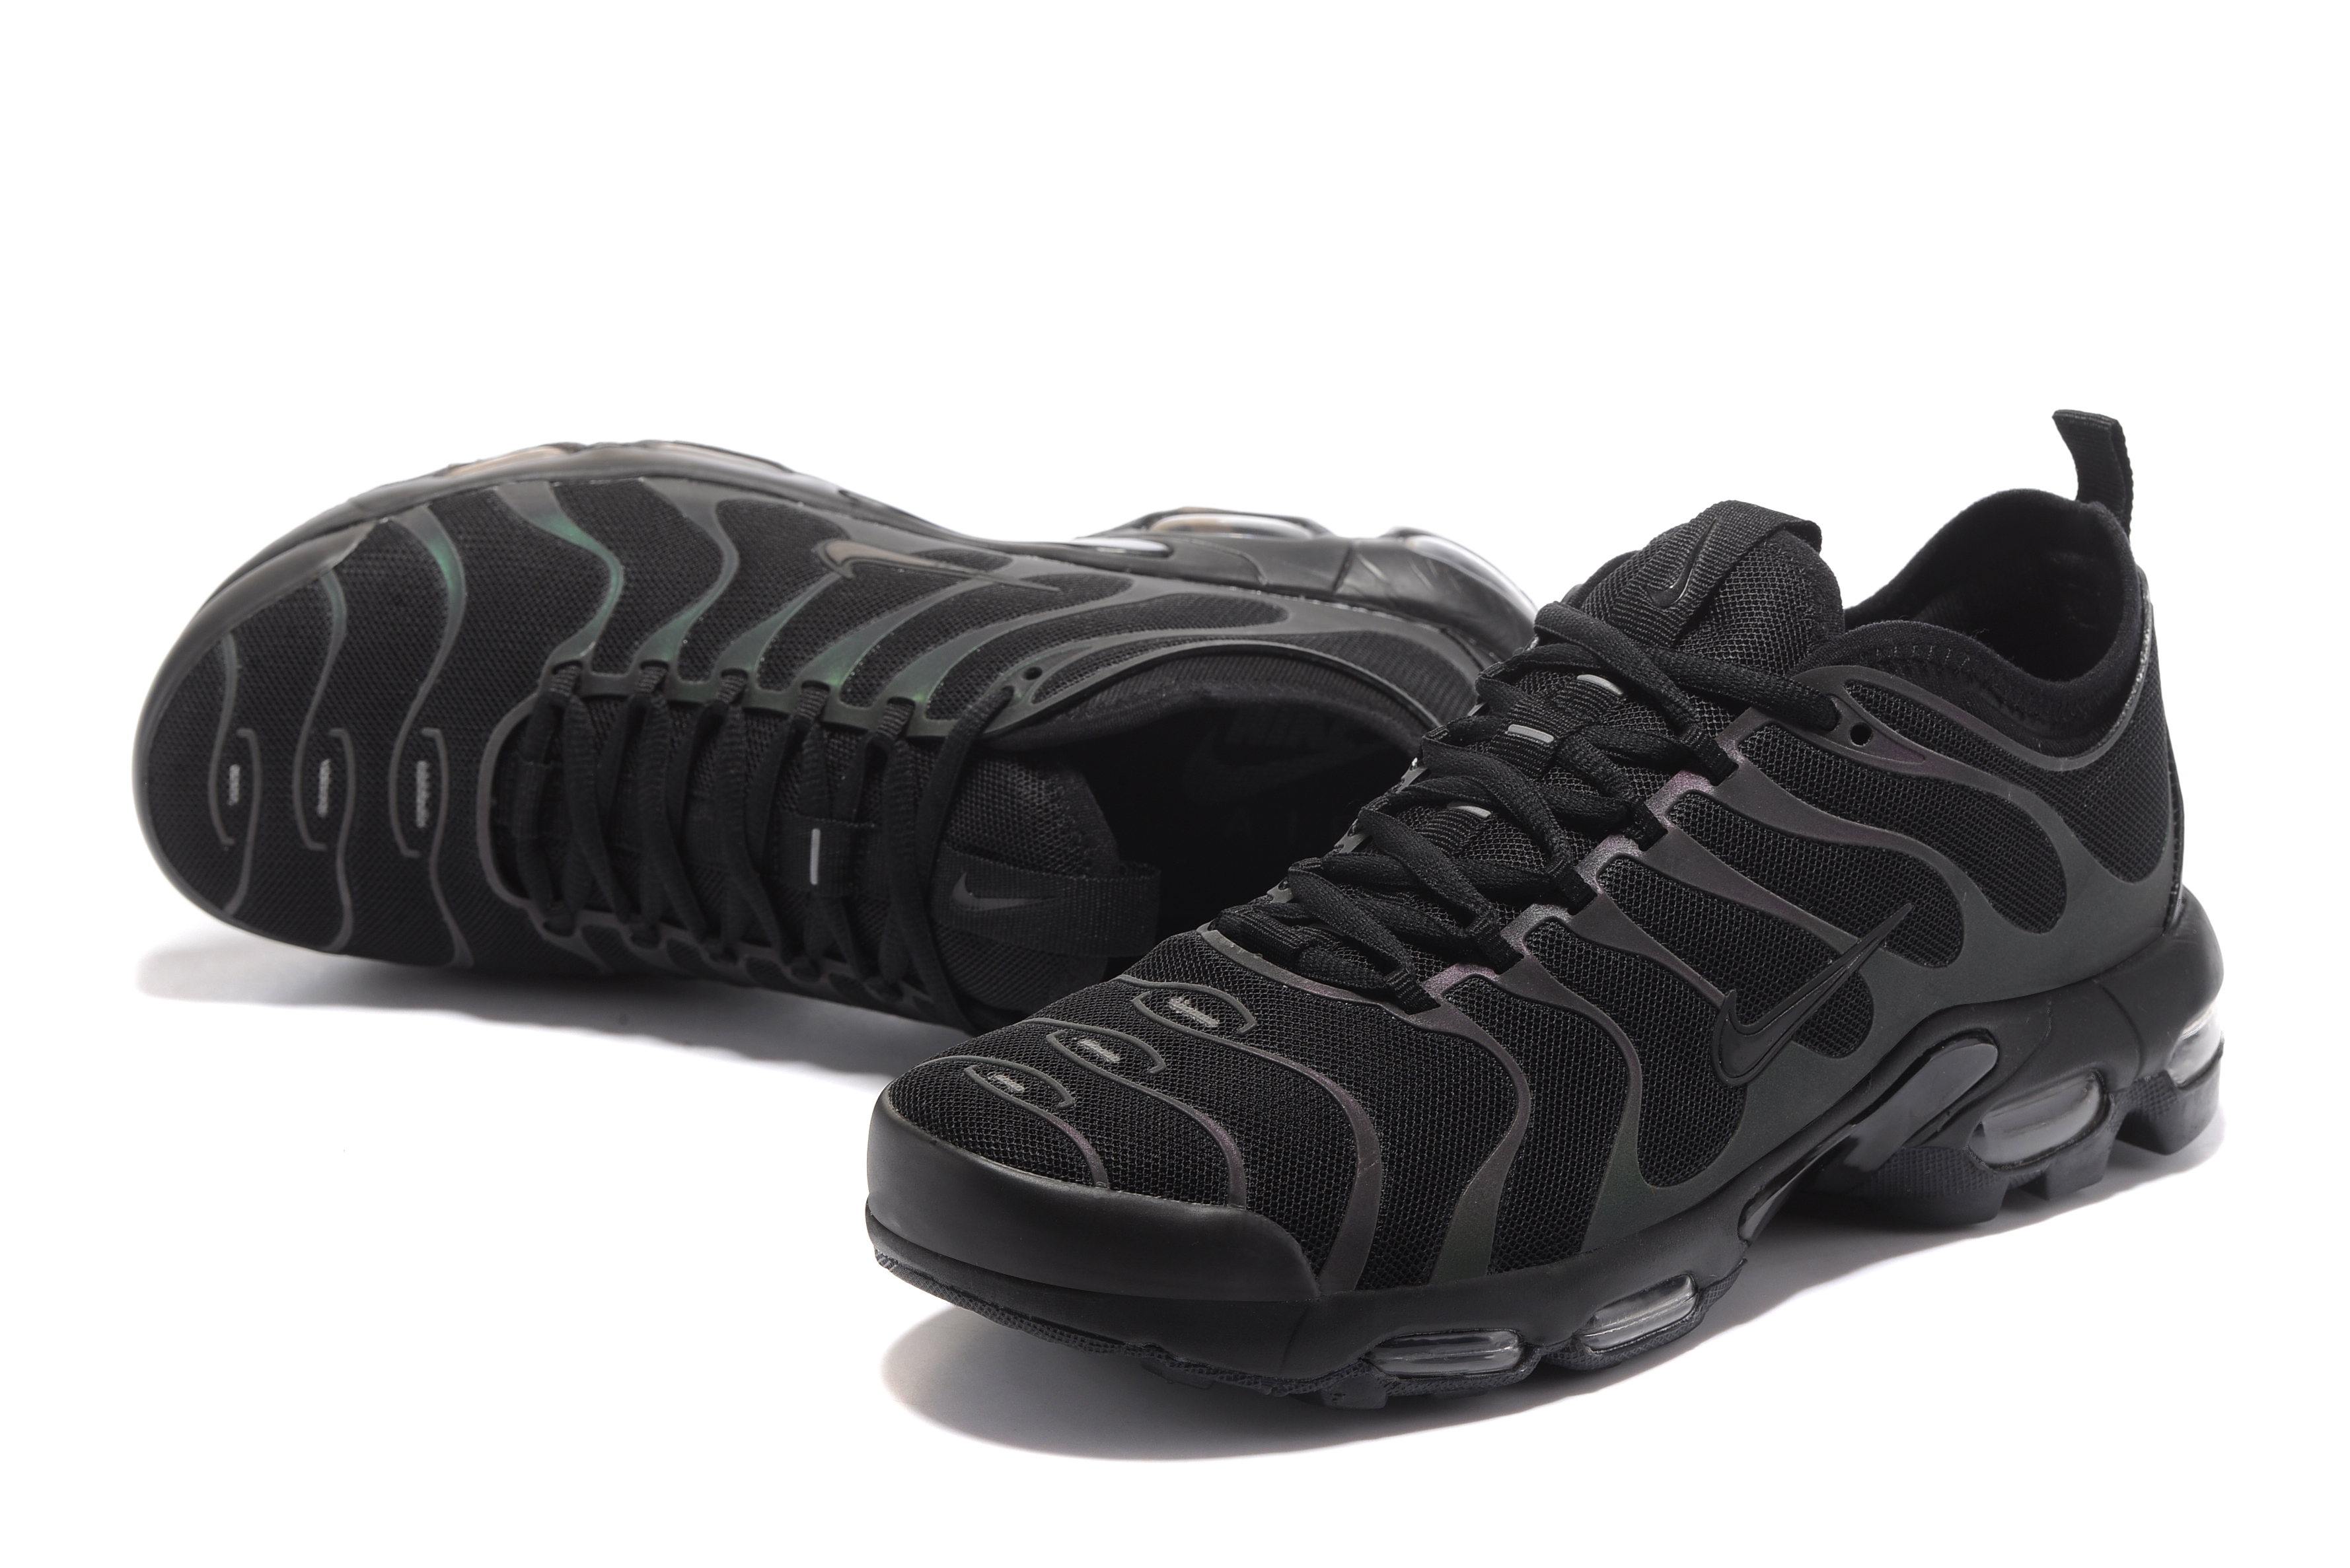 Nike Air Max Plus TN All Black Shoes